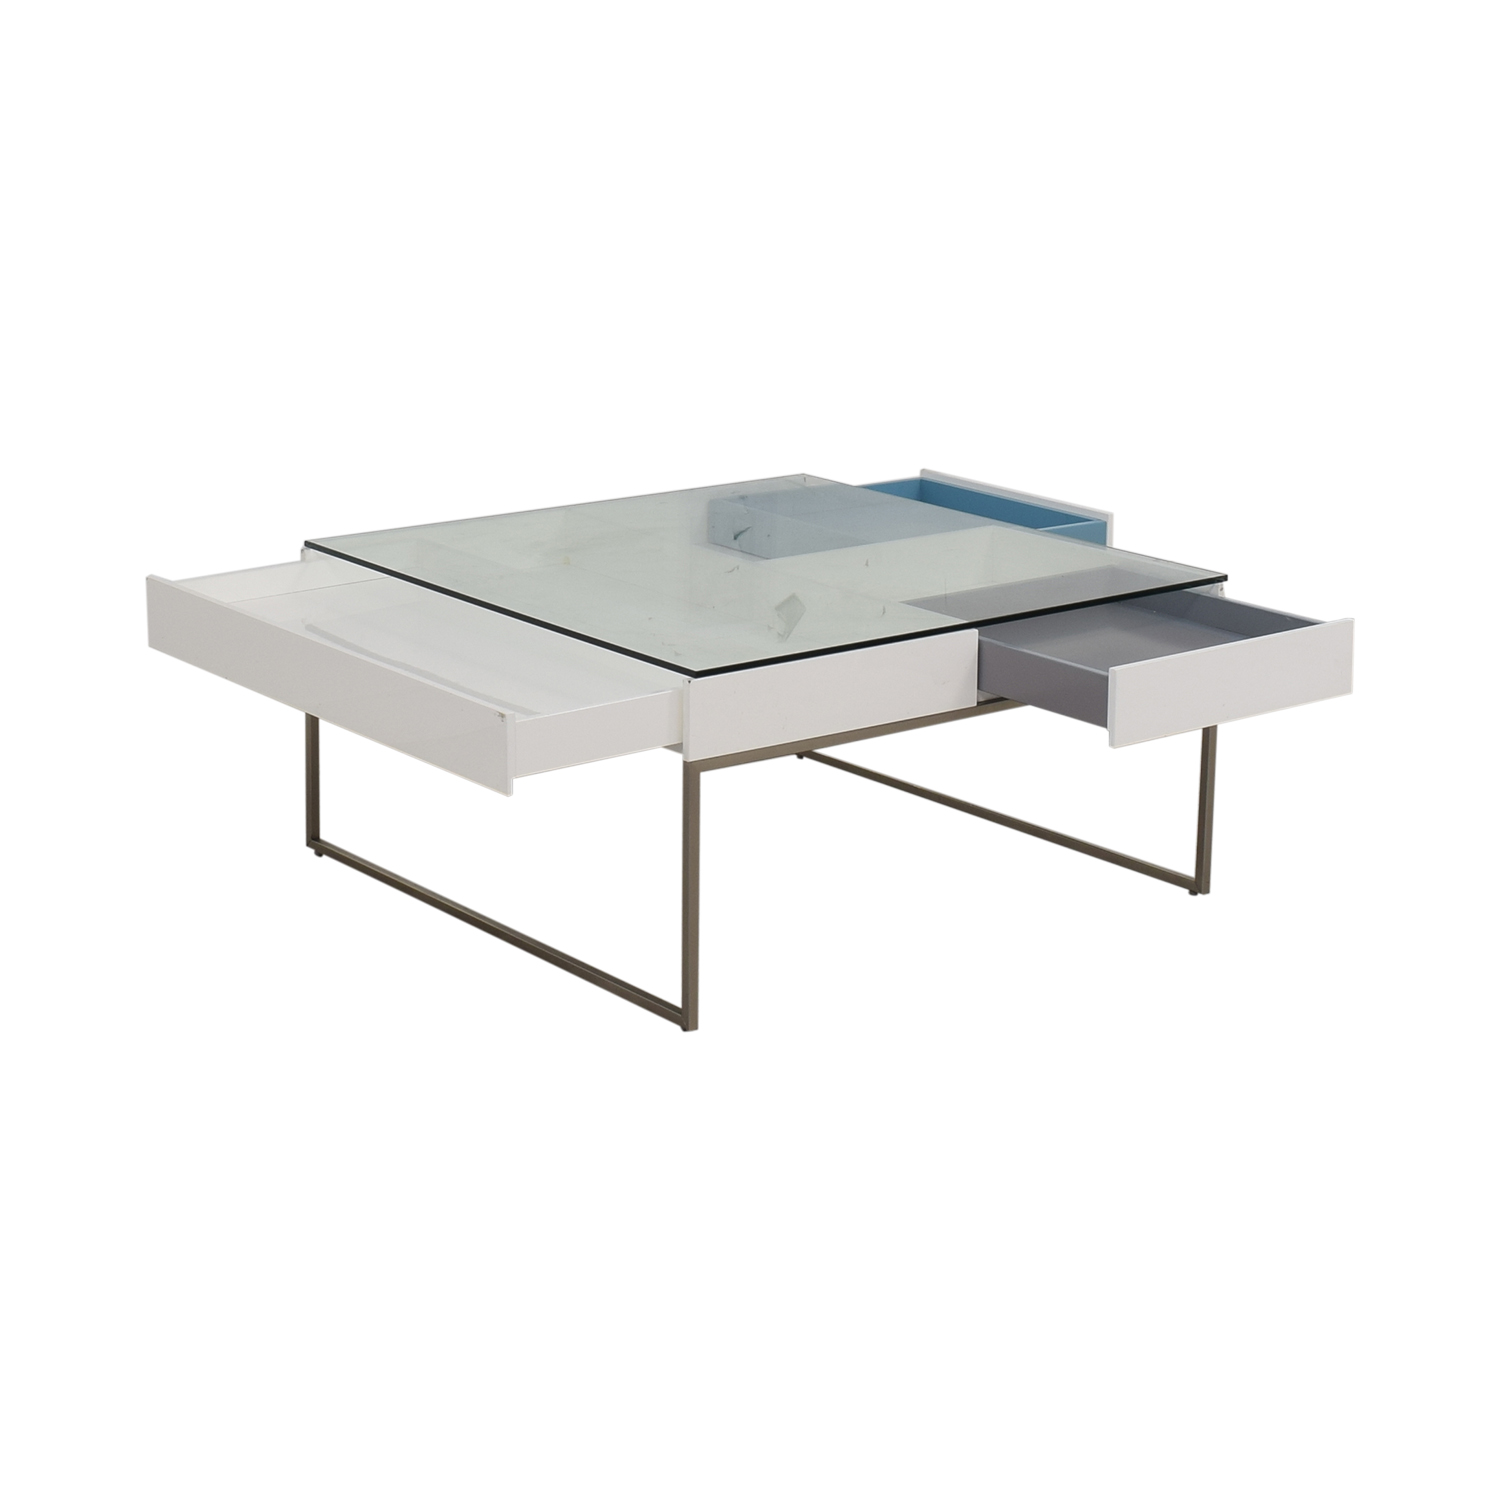 BoConcept BoConcept Chiva Glass and White Lacquered Coffee Table gray white and blue